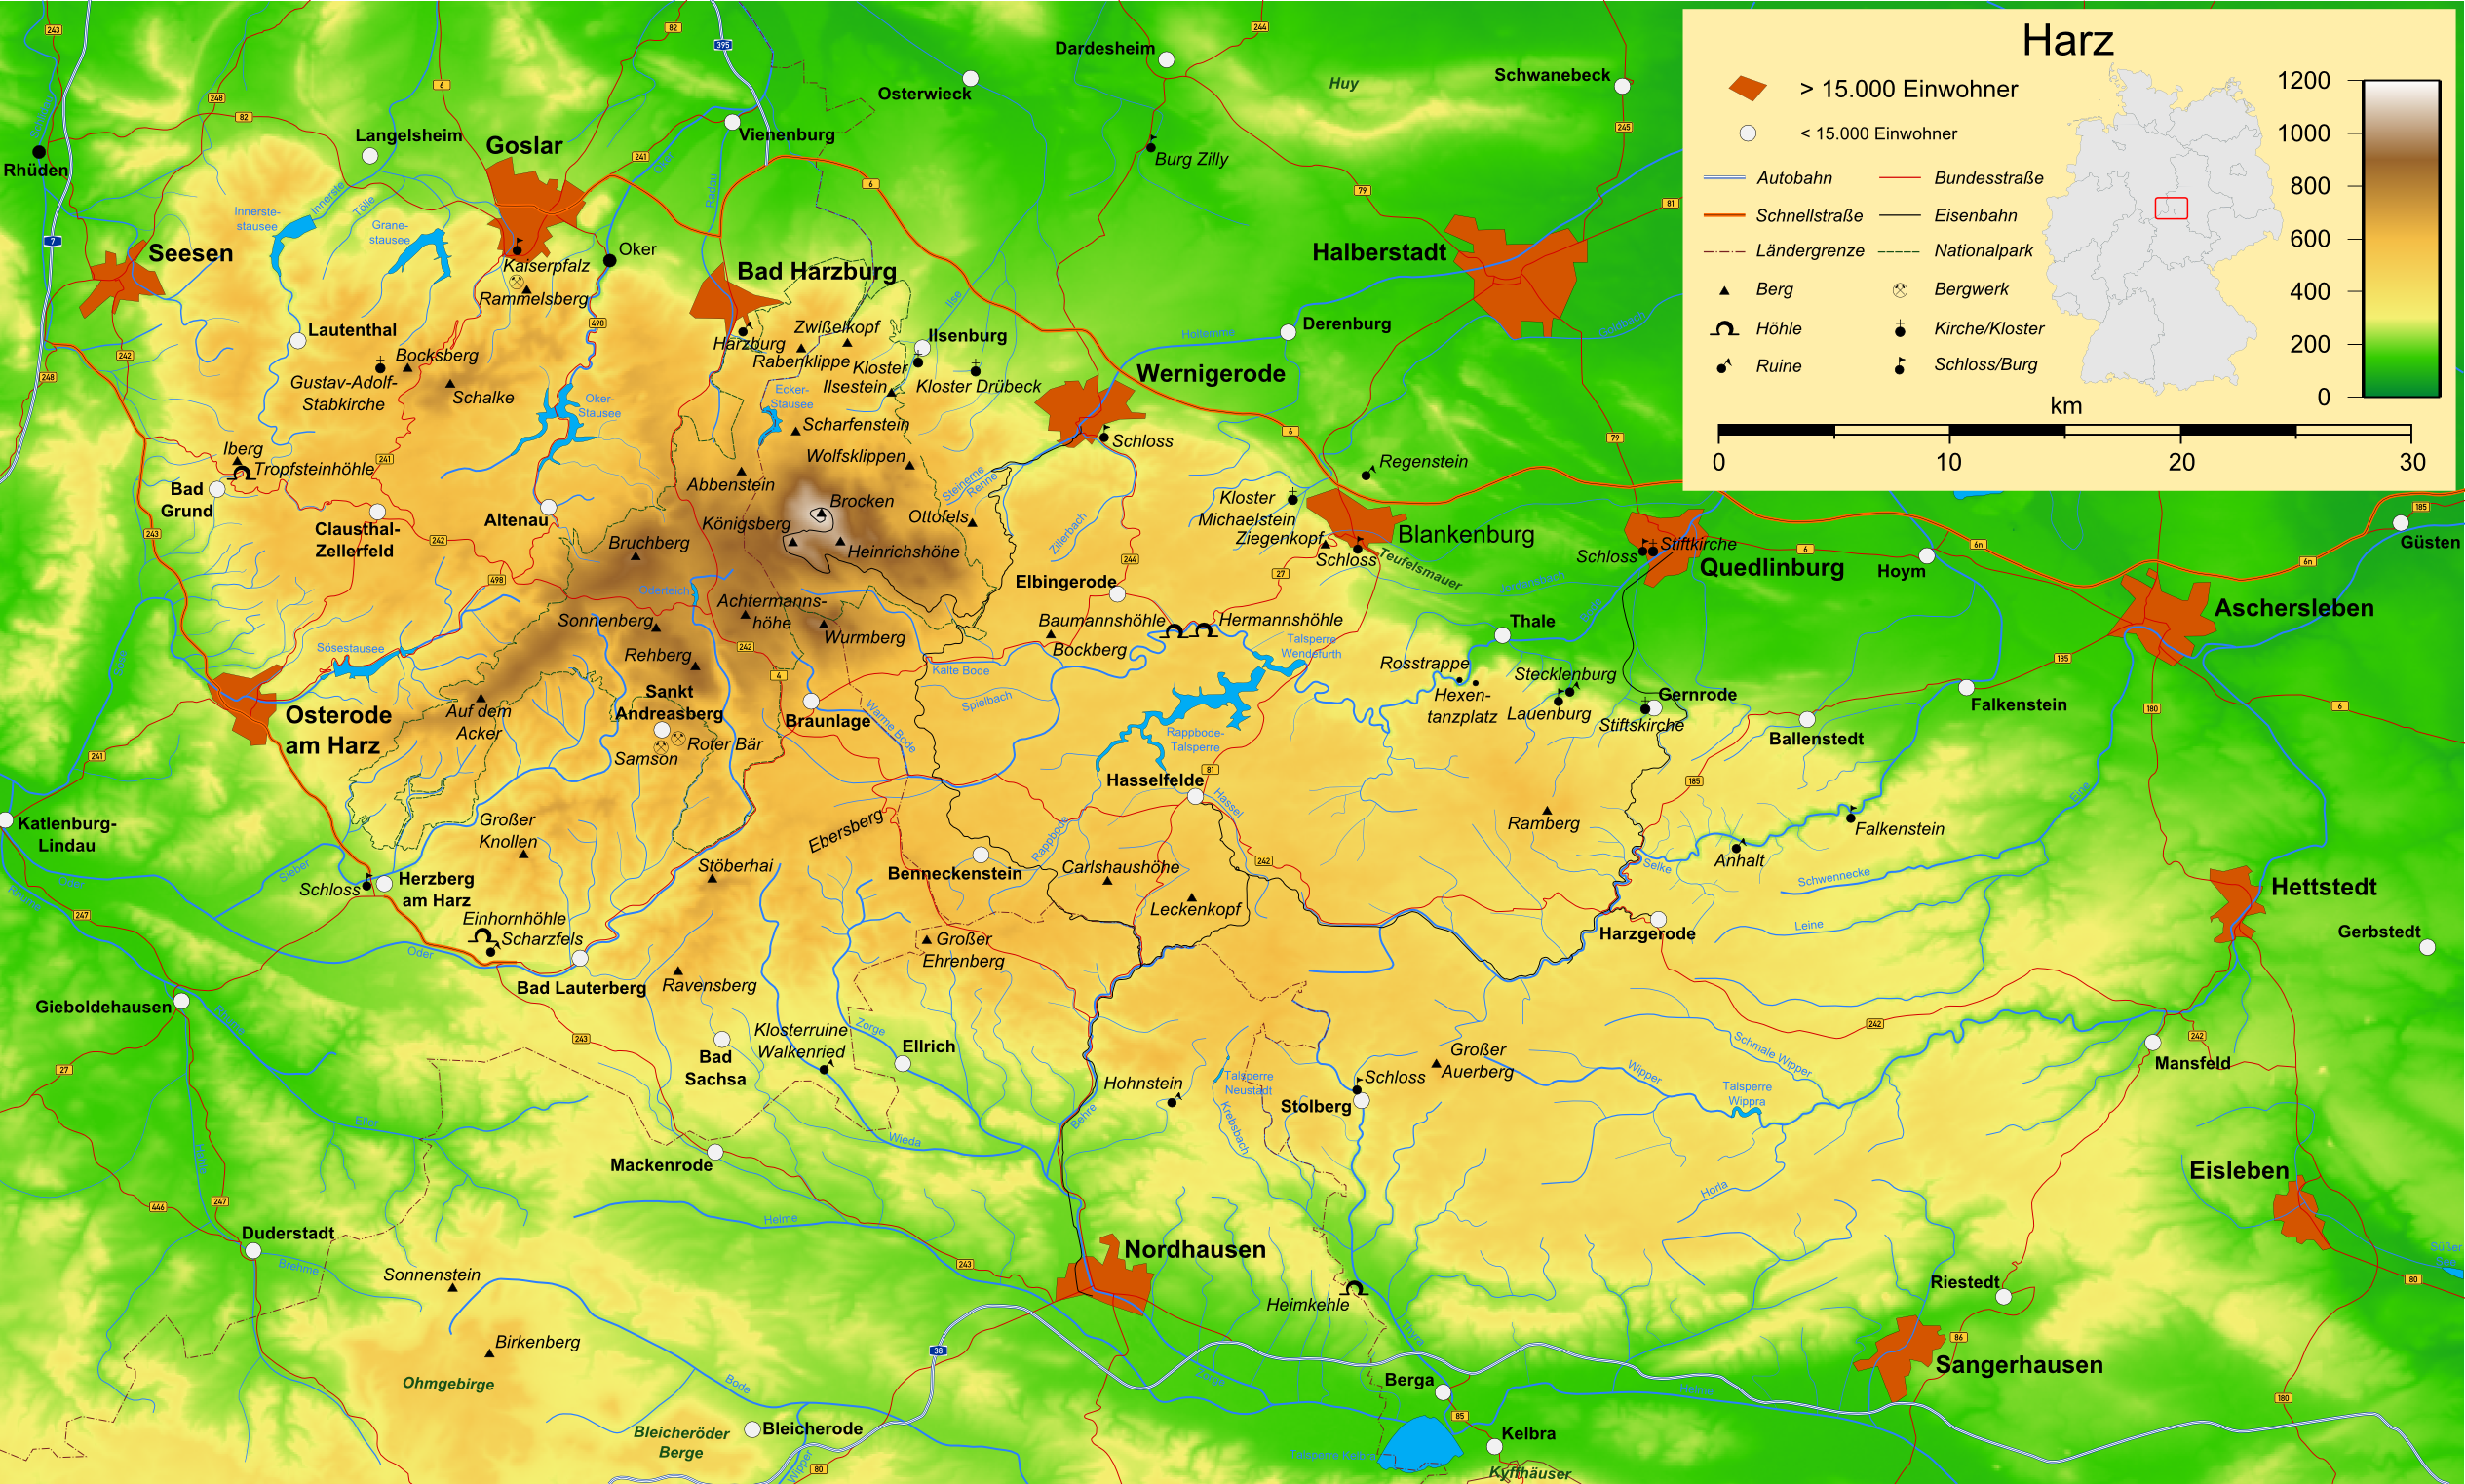 harz karte File:Harz map.png   Wikimedia Commons